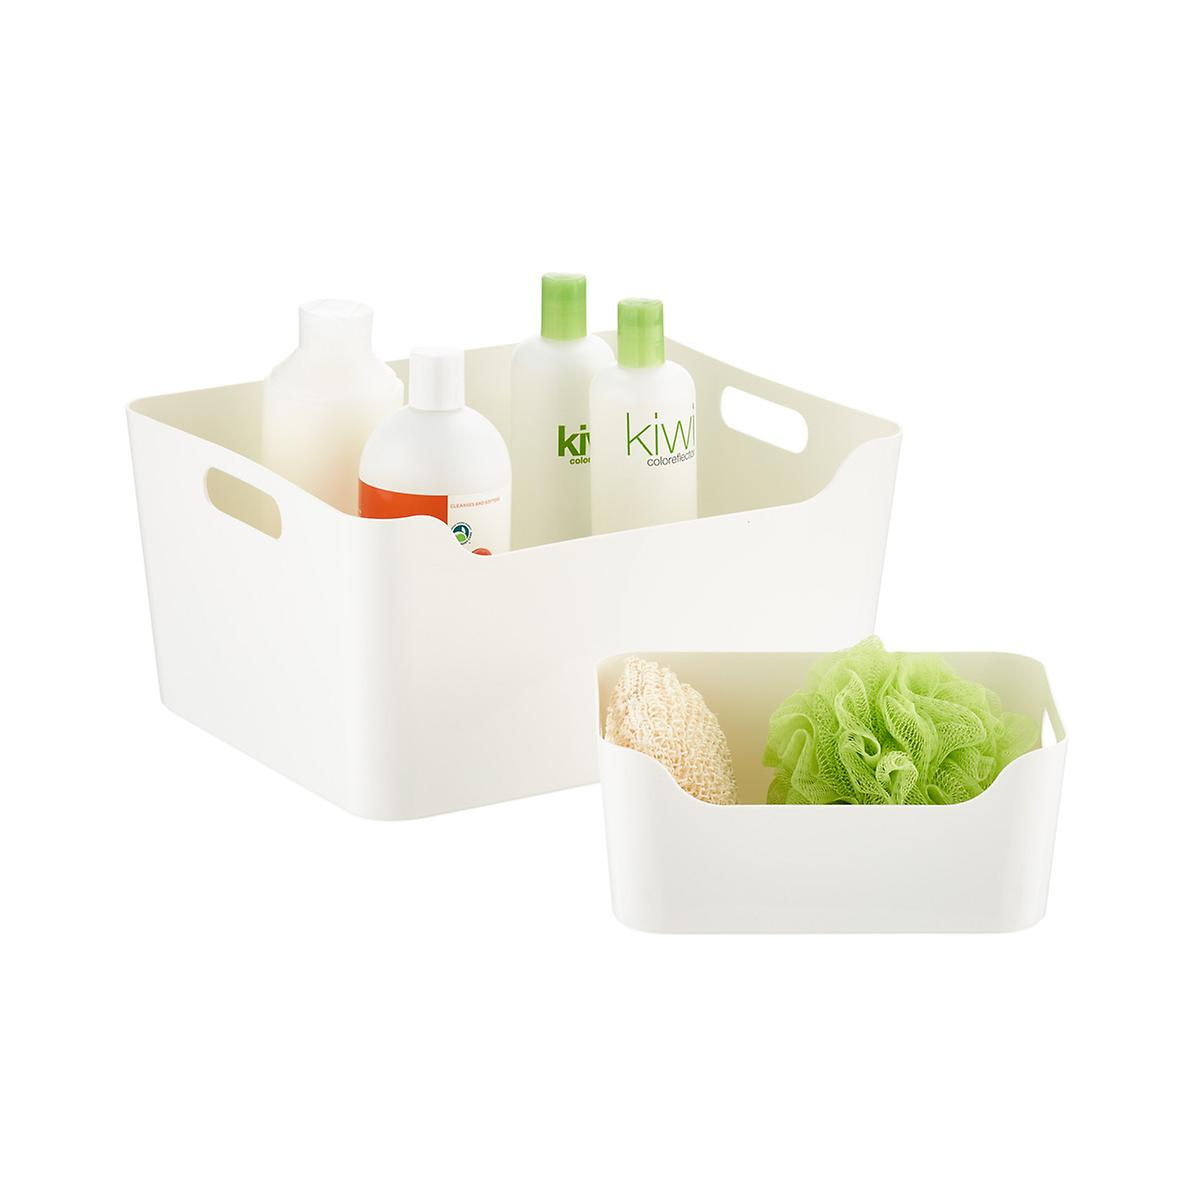 White Plastic Storage Bins with Handles